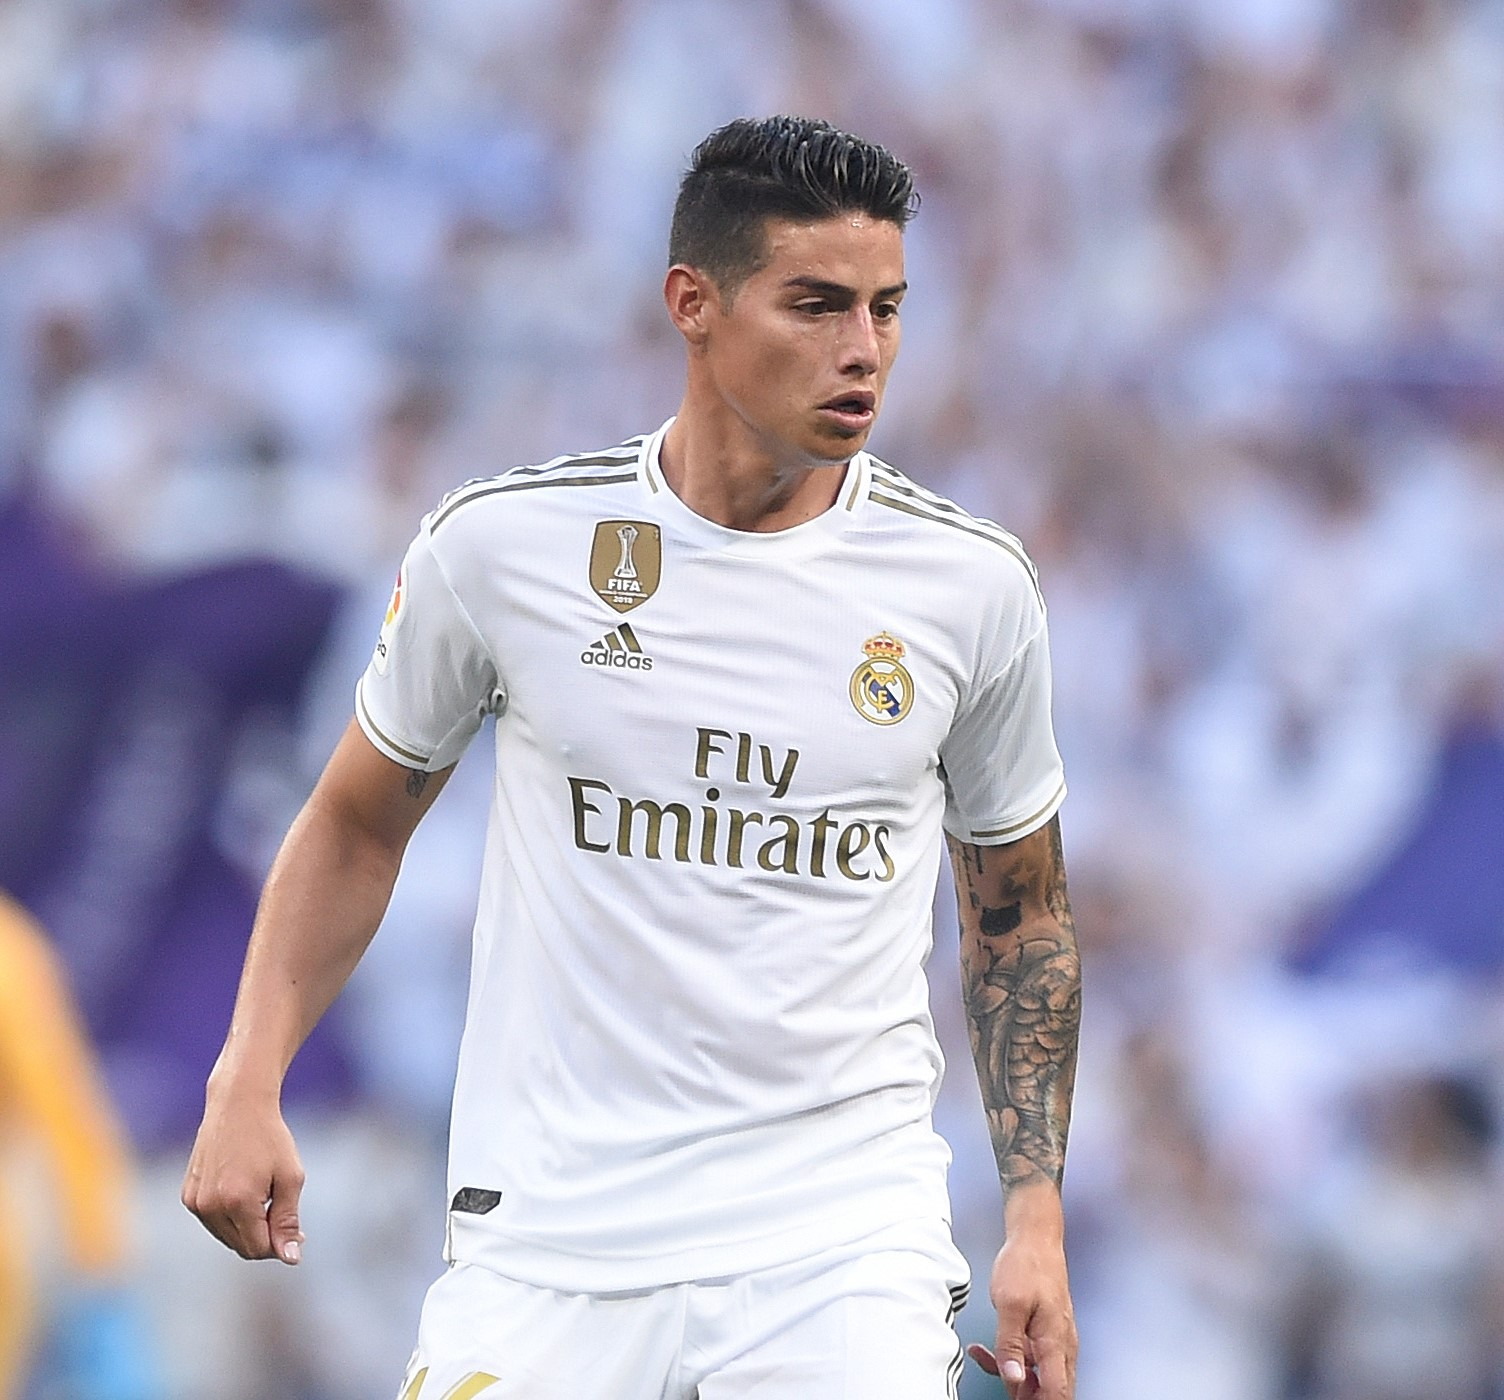 Real Madrid : James Rodriguez confirme qu'il veut quitter le club